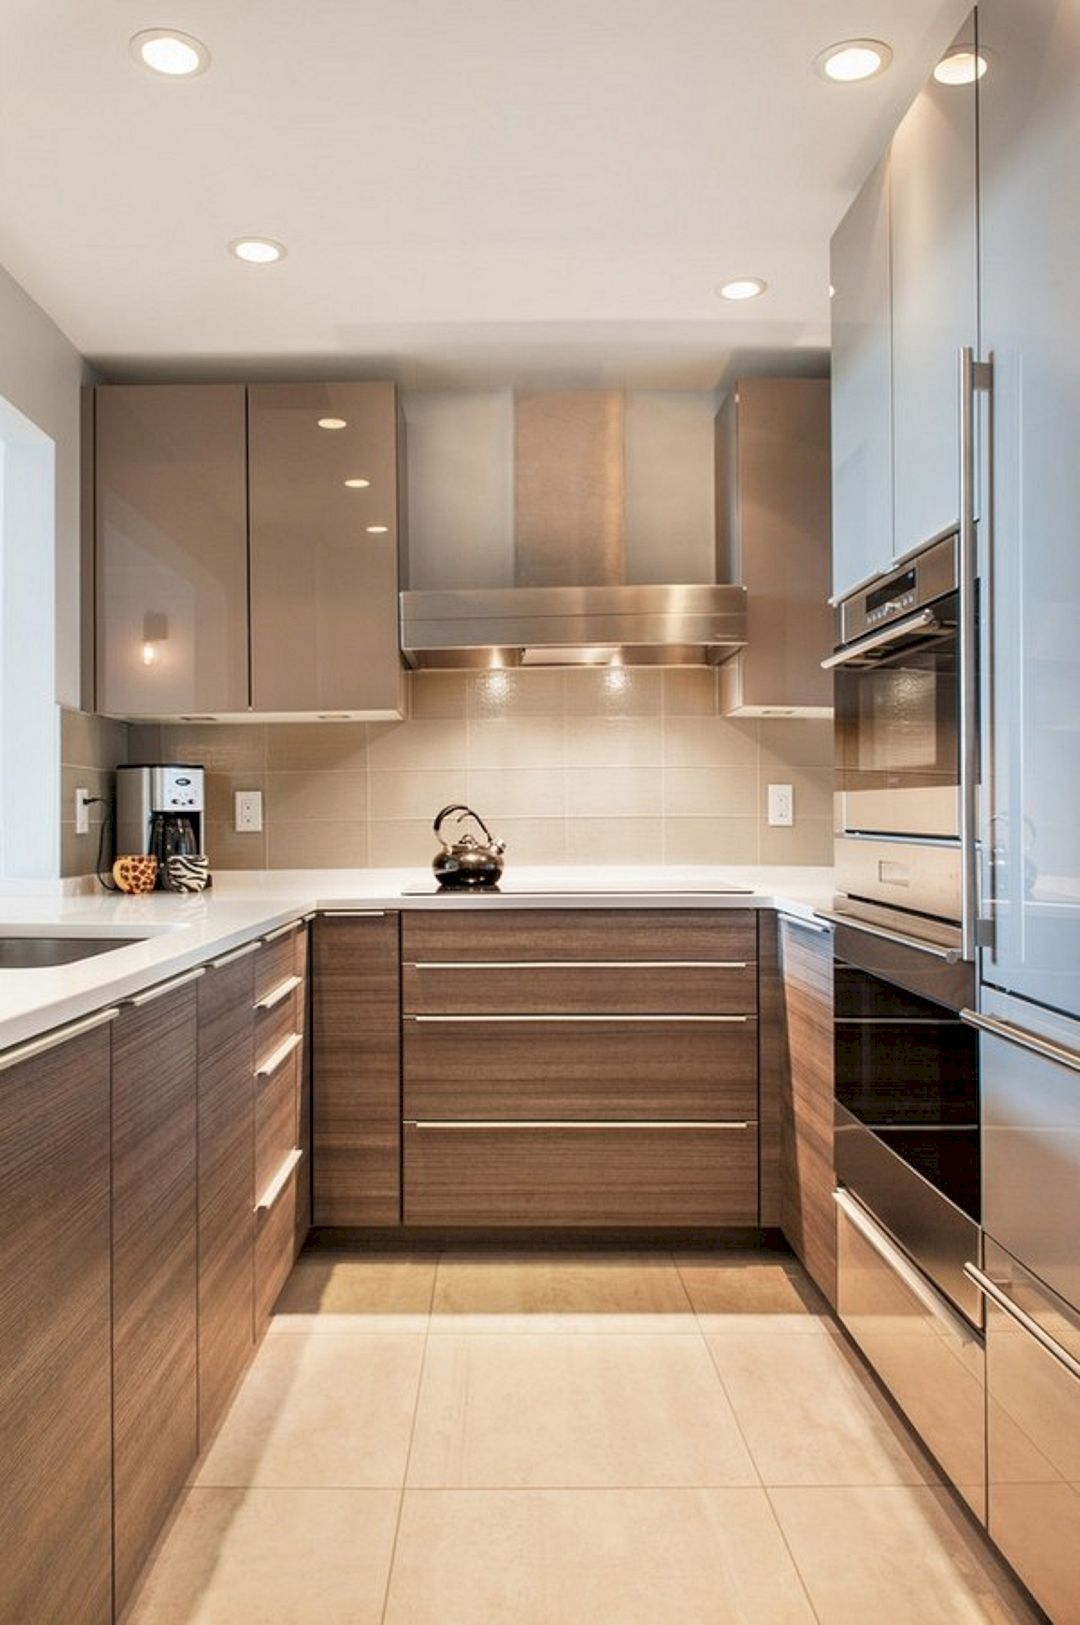 Top And The Most Stunning Modern Kitchen Design For Your Perfect Home Freshouz Com Kitchen Design Modern Small Small Modern Kitchens Kitchen Cabinet Design